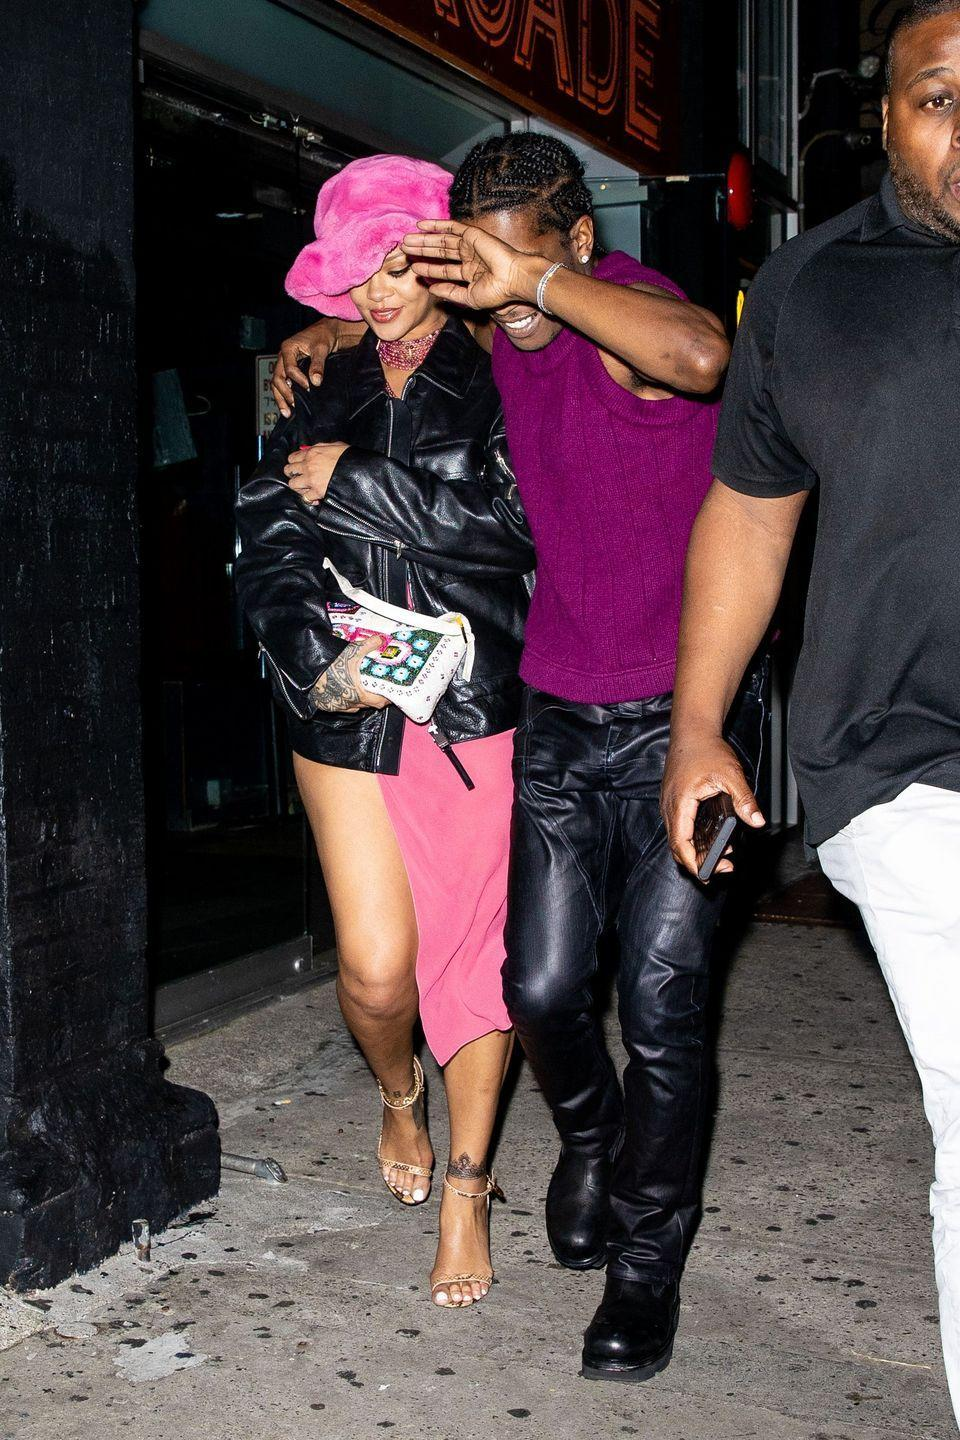 """<p>On June 22, 2021, Rihanna and boyfriend ASAP Rocky were <a href=""""https://www.elle.com/uk/life-and-culture/a36116780/rihanna-asap-rocky-relationship/"""" rel=""""nofollow noopener"""" target=""""_blank"""" data-ylk=""""slk:pictured on a date night in New York City and people had a lot of feelings."""" class=""""link rapid-noclick-resp"""">pictured on a date night in New York City and people had a lot of feelings.</a> The PDA-pictures were adorable - Rihanna wore a pink fluffy hat with a vintage Dior sleep dress, ASAP wore head-to-toe leather and Rihanna appeared to have covered up a tattoo on her ankle....</p>"""